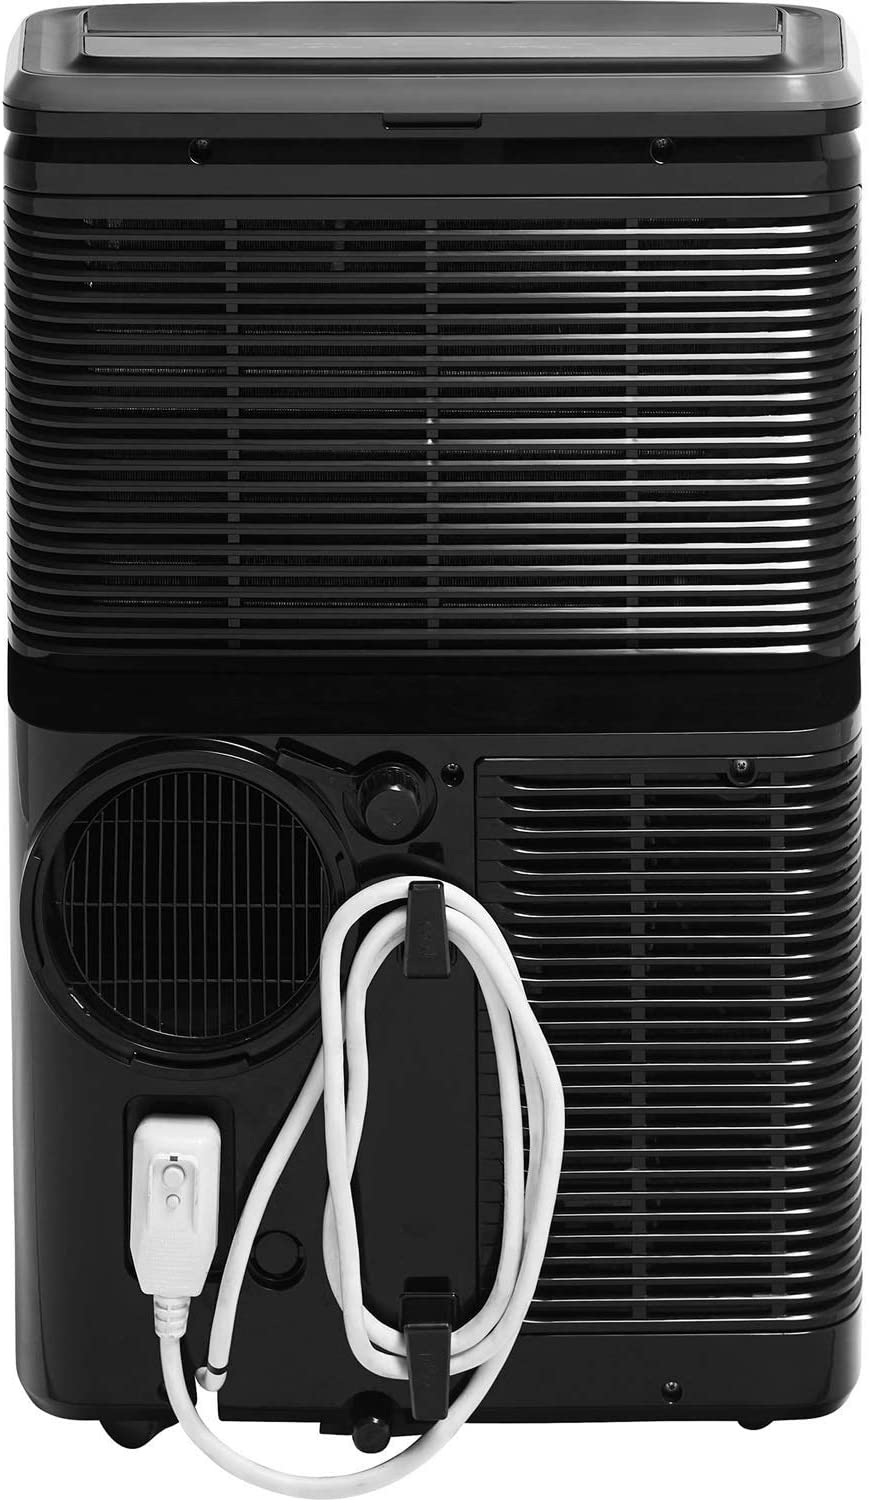 Renewed FRIGIDAIRE Portable Air Conditioner with Remote Control for Rooms up to 700-sq ft.